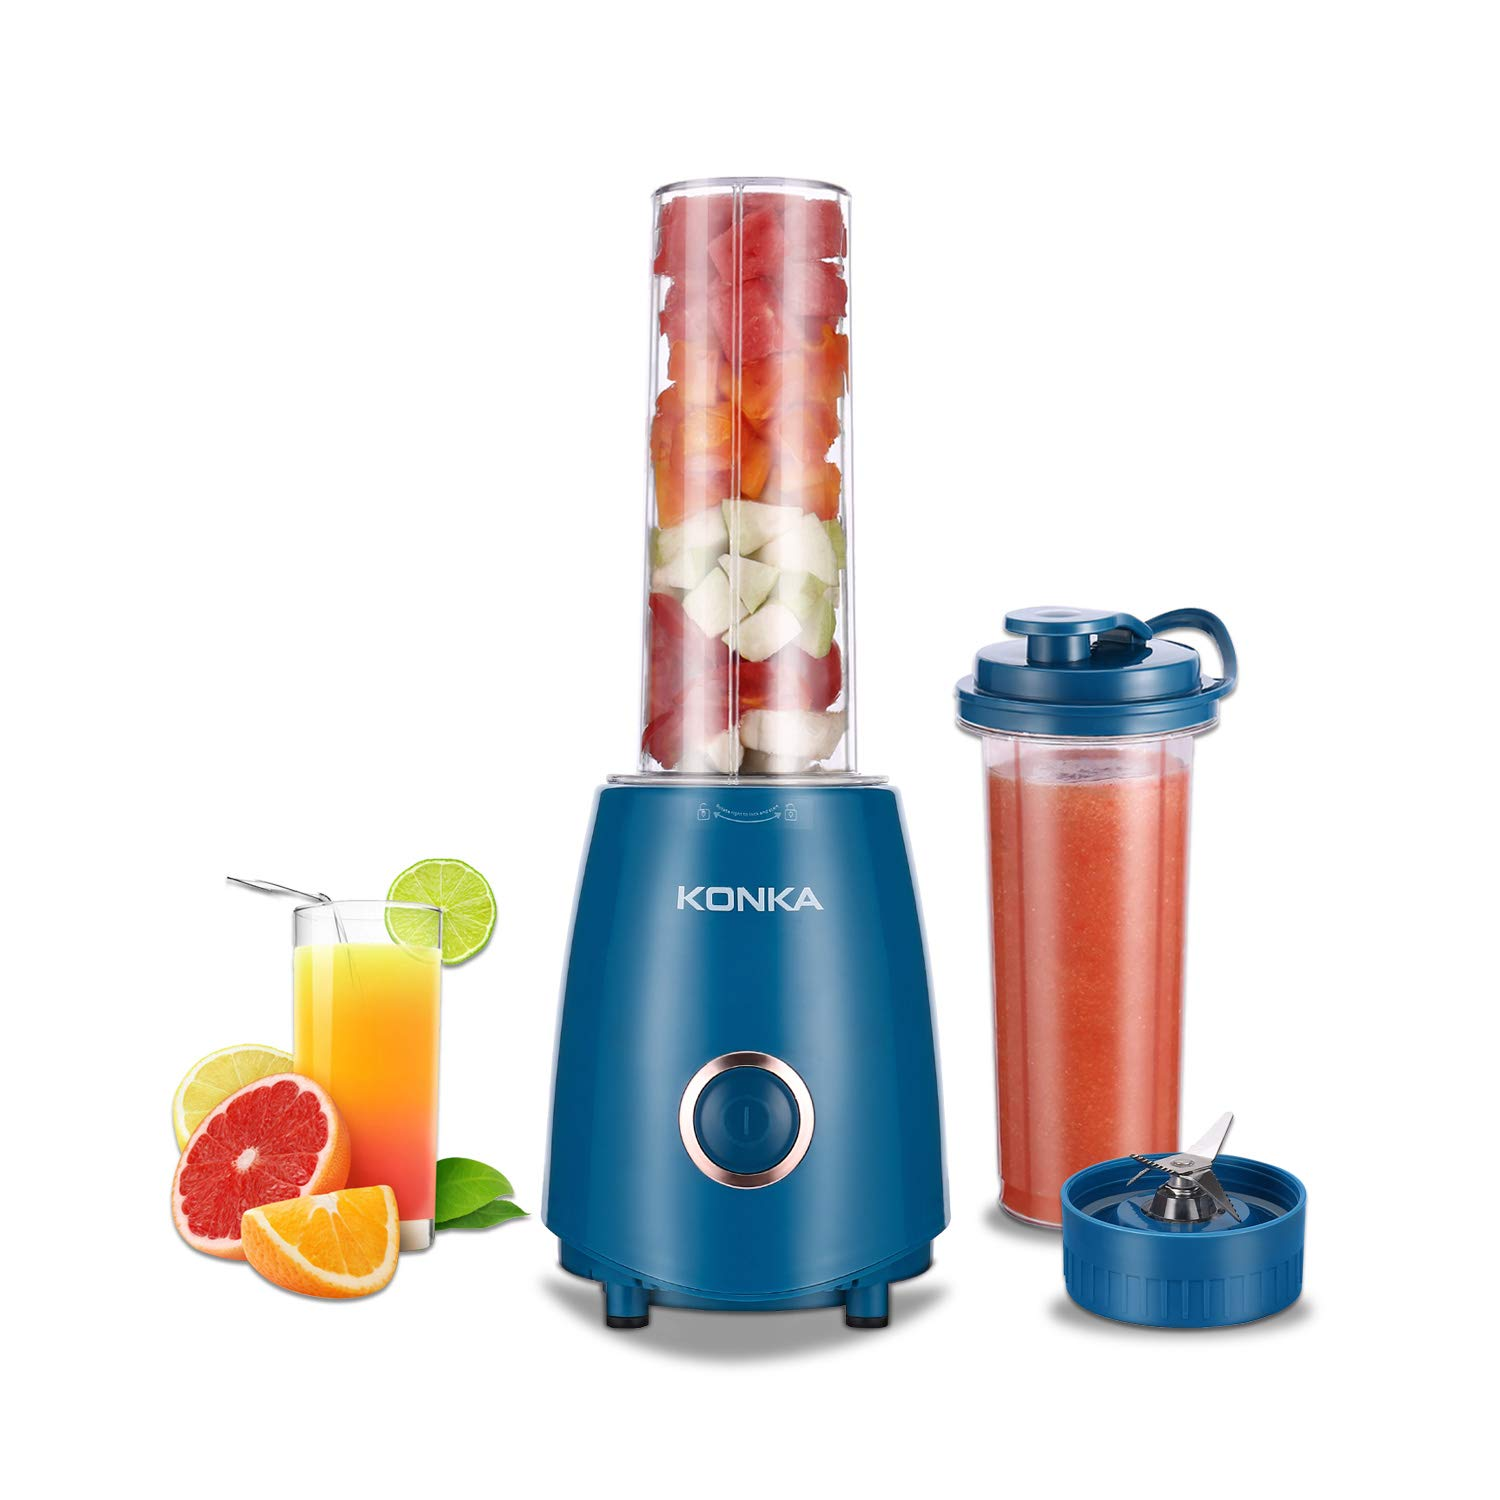 KONKA Smoothie Blender,Professional Personal High Speed Blender for Juice Shakes, Juice Extractor with Two Large Tritan Travel Cups 18oz BPA Free, Blue